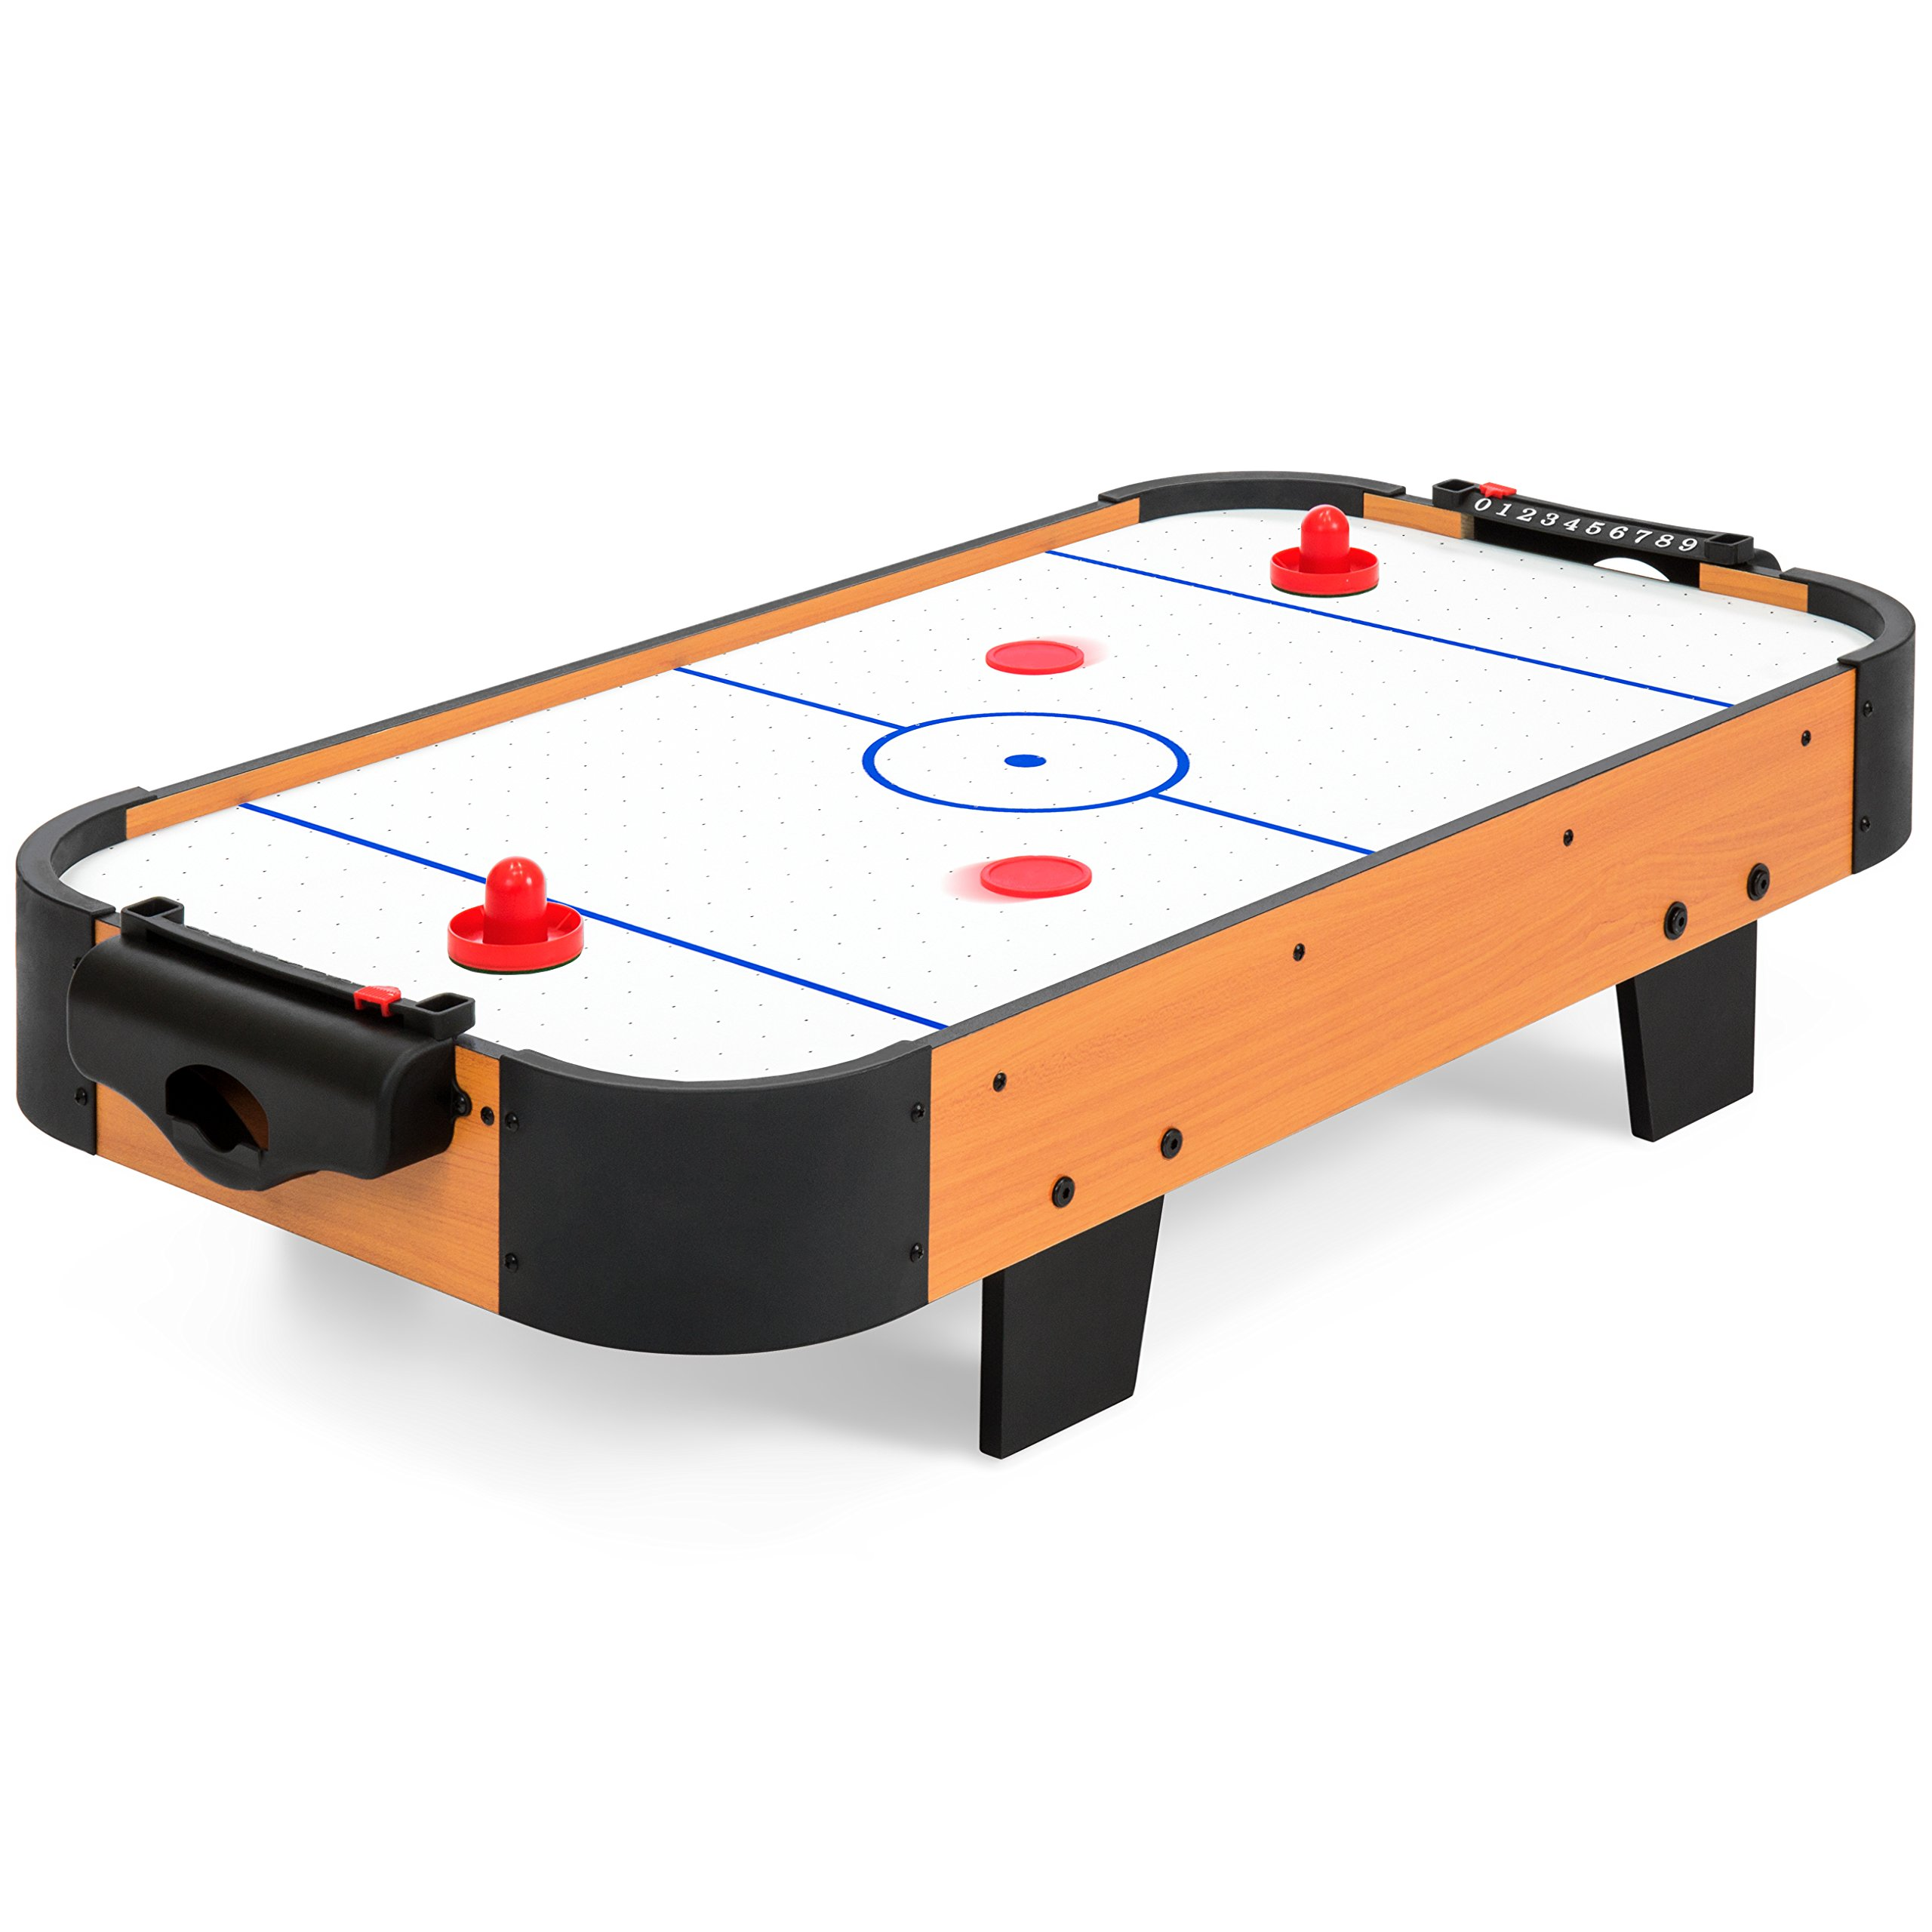 Best Choice Products 40in Air Hockey Table w/ Electric Fan Motor, 2 Strikers, Pucks - Multicolor by Best Choice Products